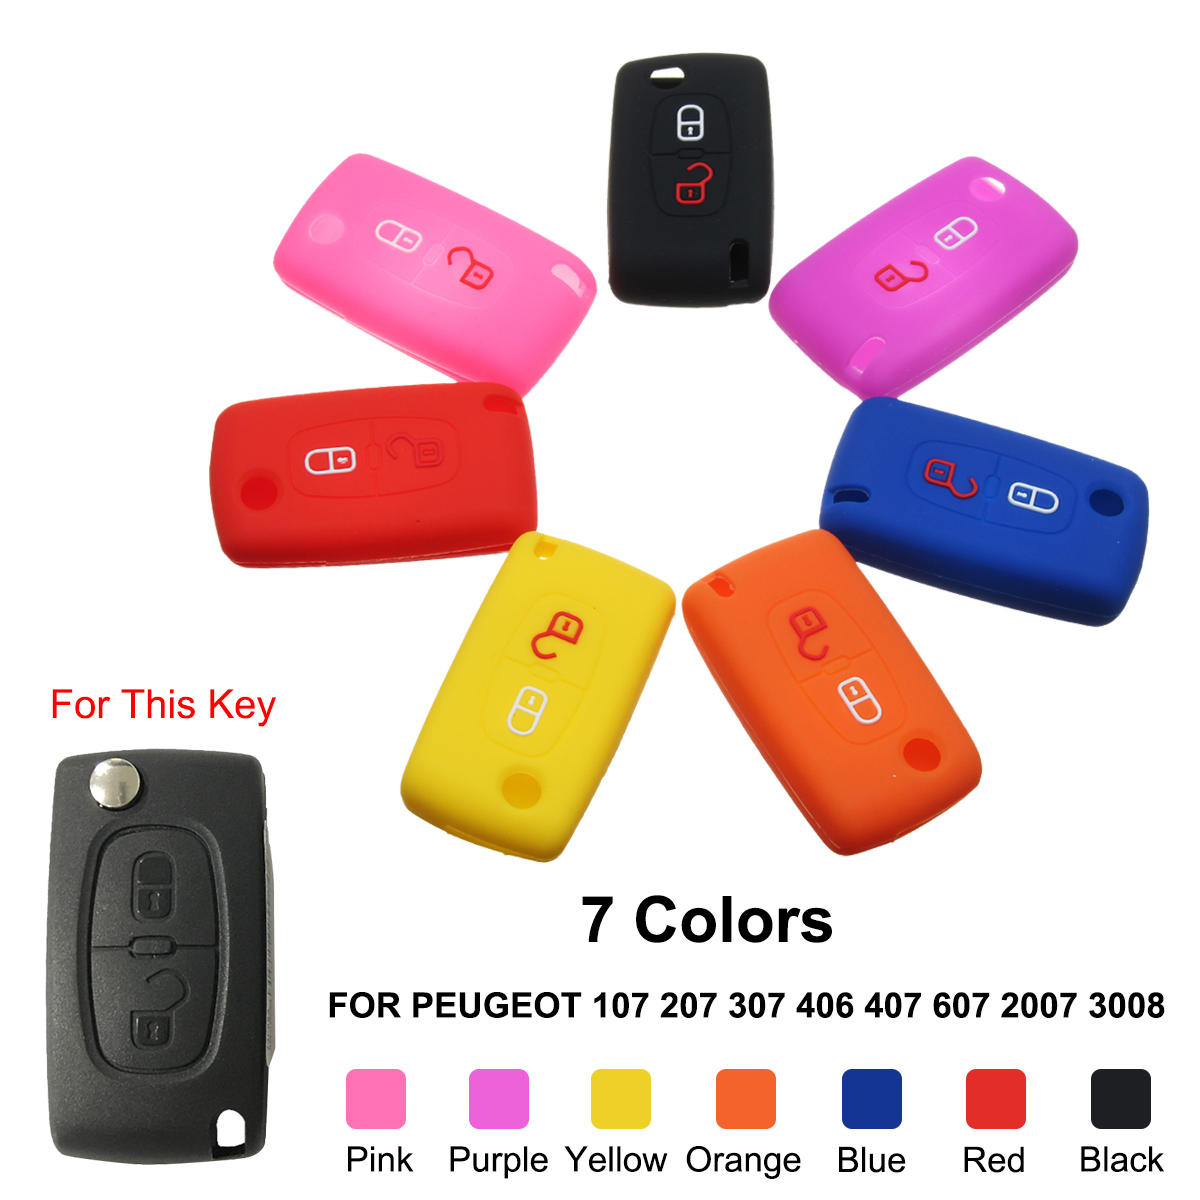 2 Buttons Silicone Car Key Remote Case/bag Cover Holder for Peugeot 2007 3008 807